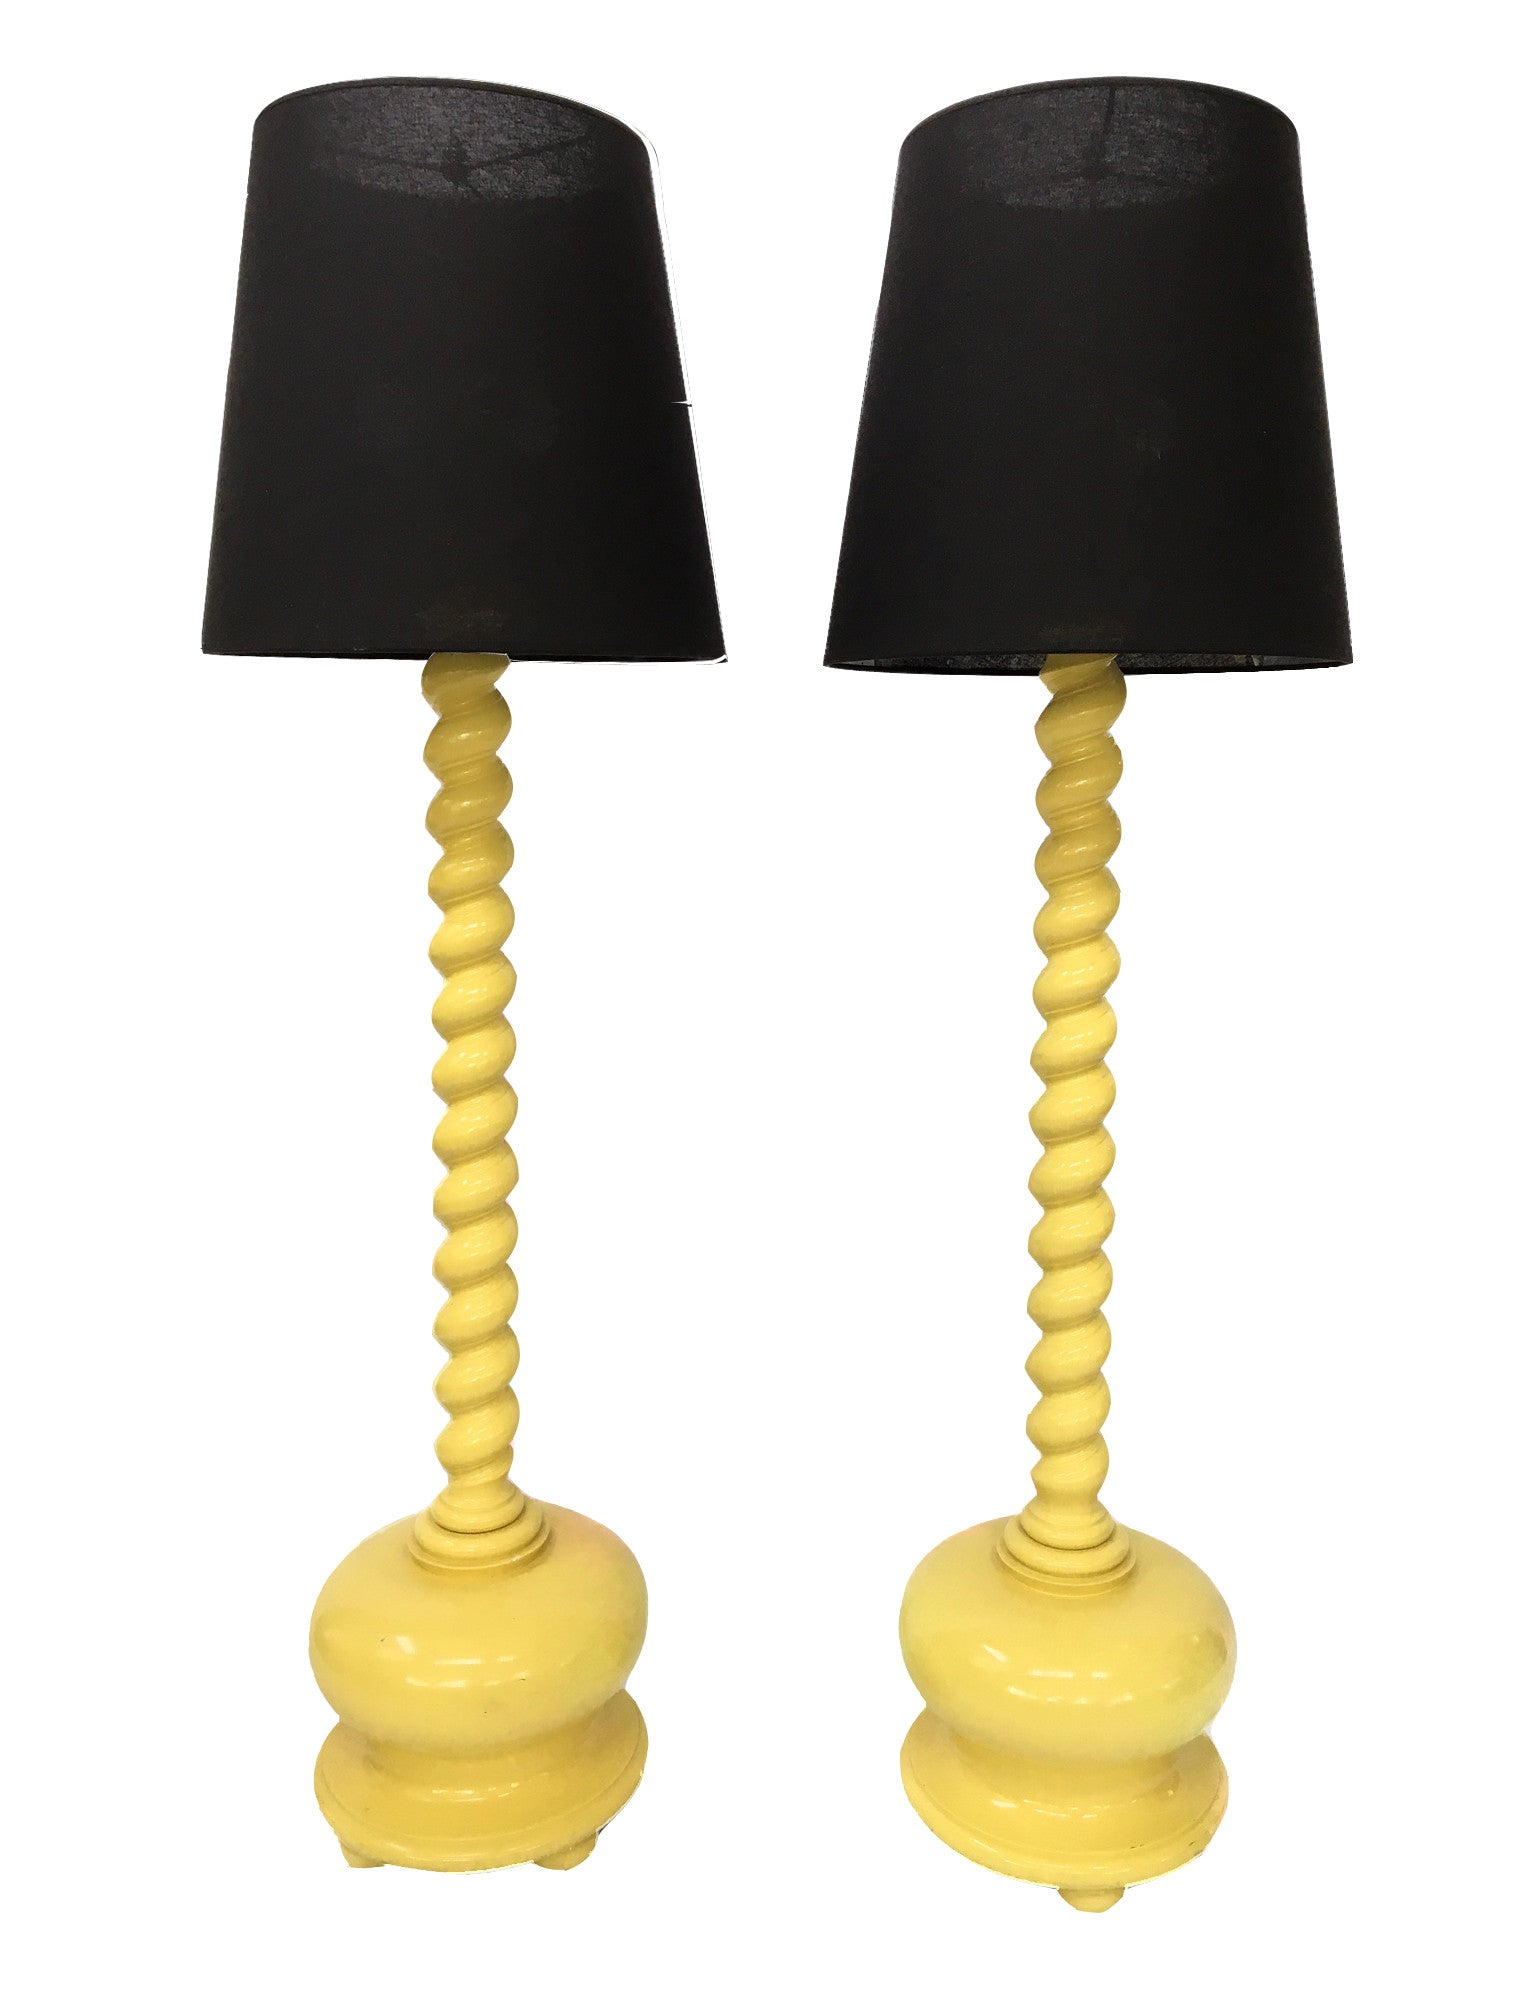 Pair of Yellow Spiral Twist Wood Floor Lamps